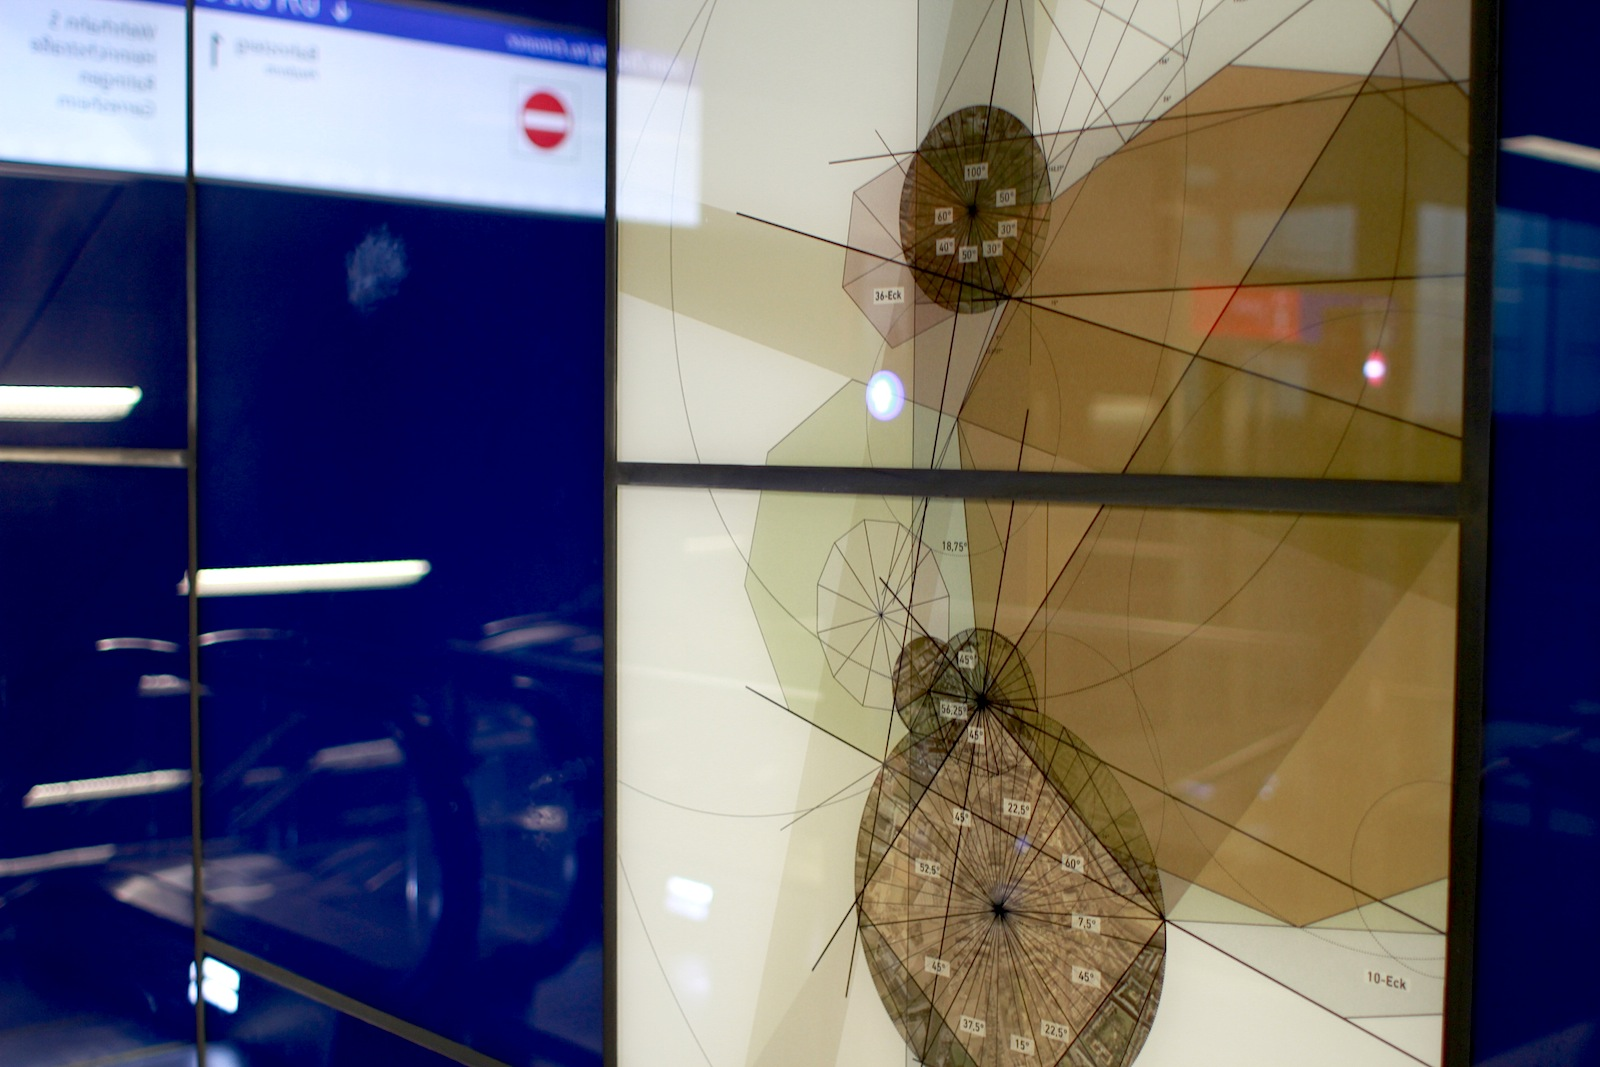 Schadowstraße Station. The resulting images of small, virtual life forms are created by means of the passersby.